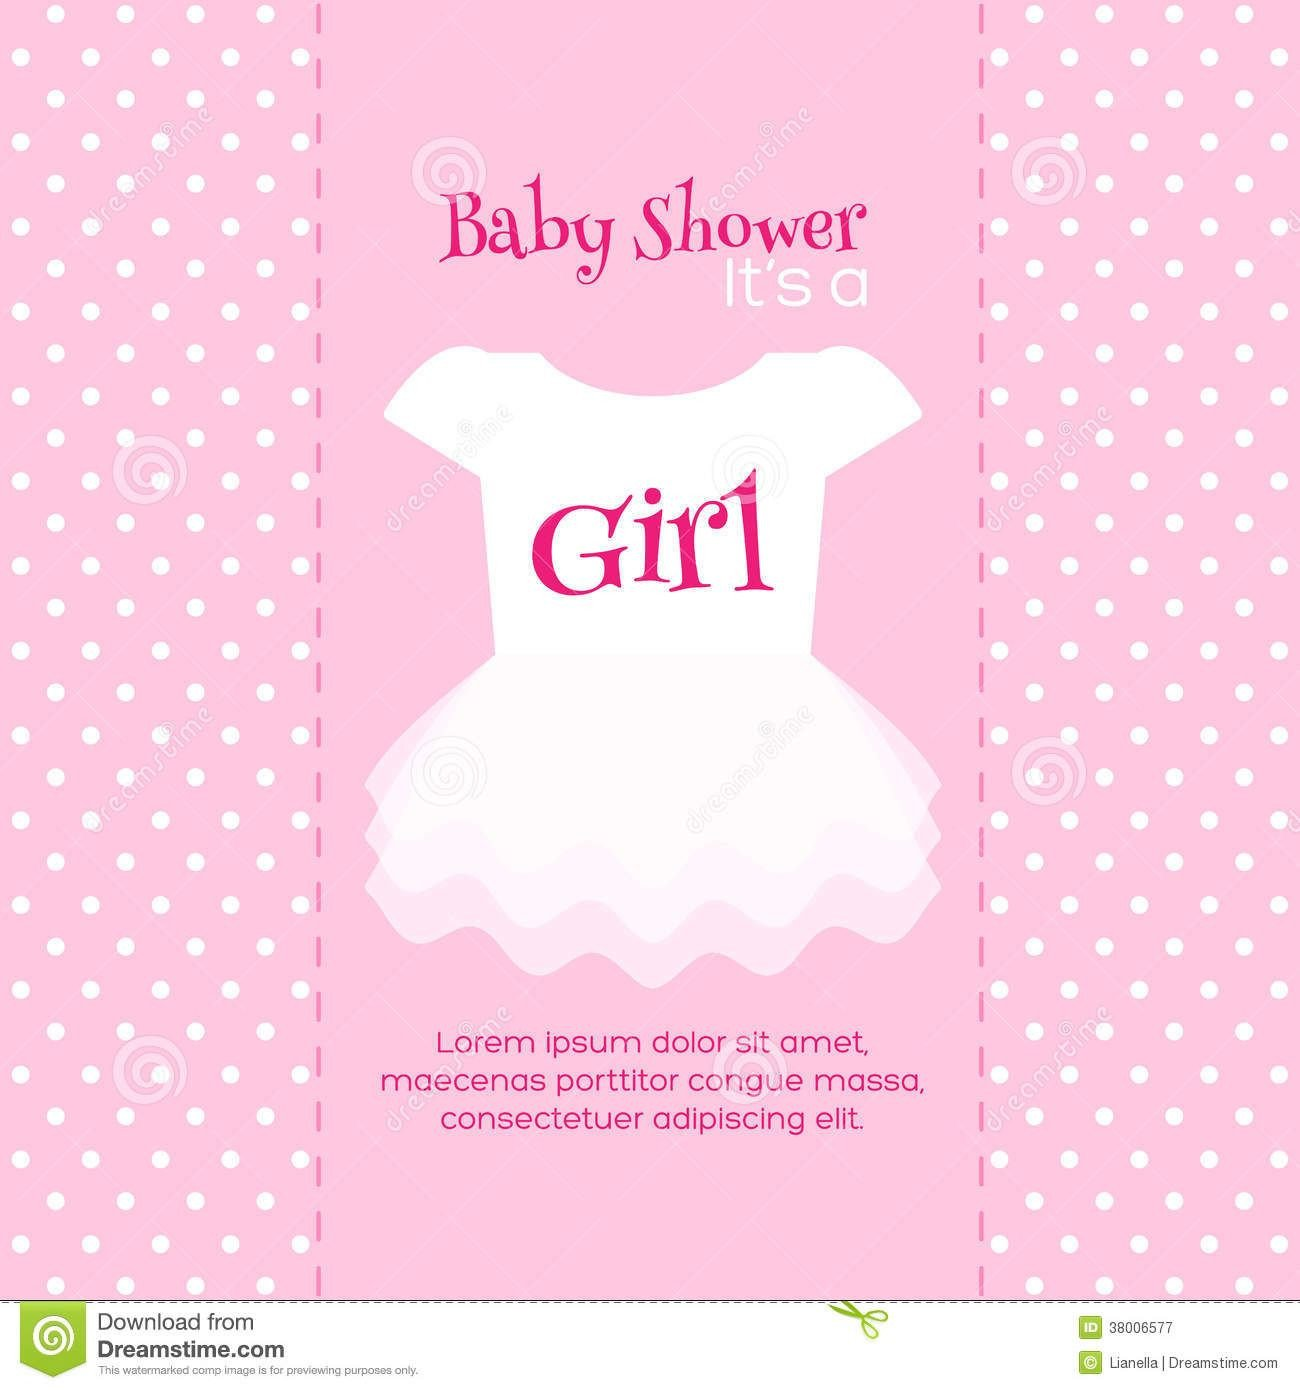 Baby Shower Invitation Template Design Free Printable Baby Shower Invitations for Girls